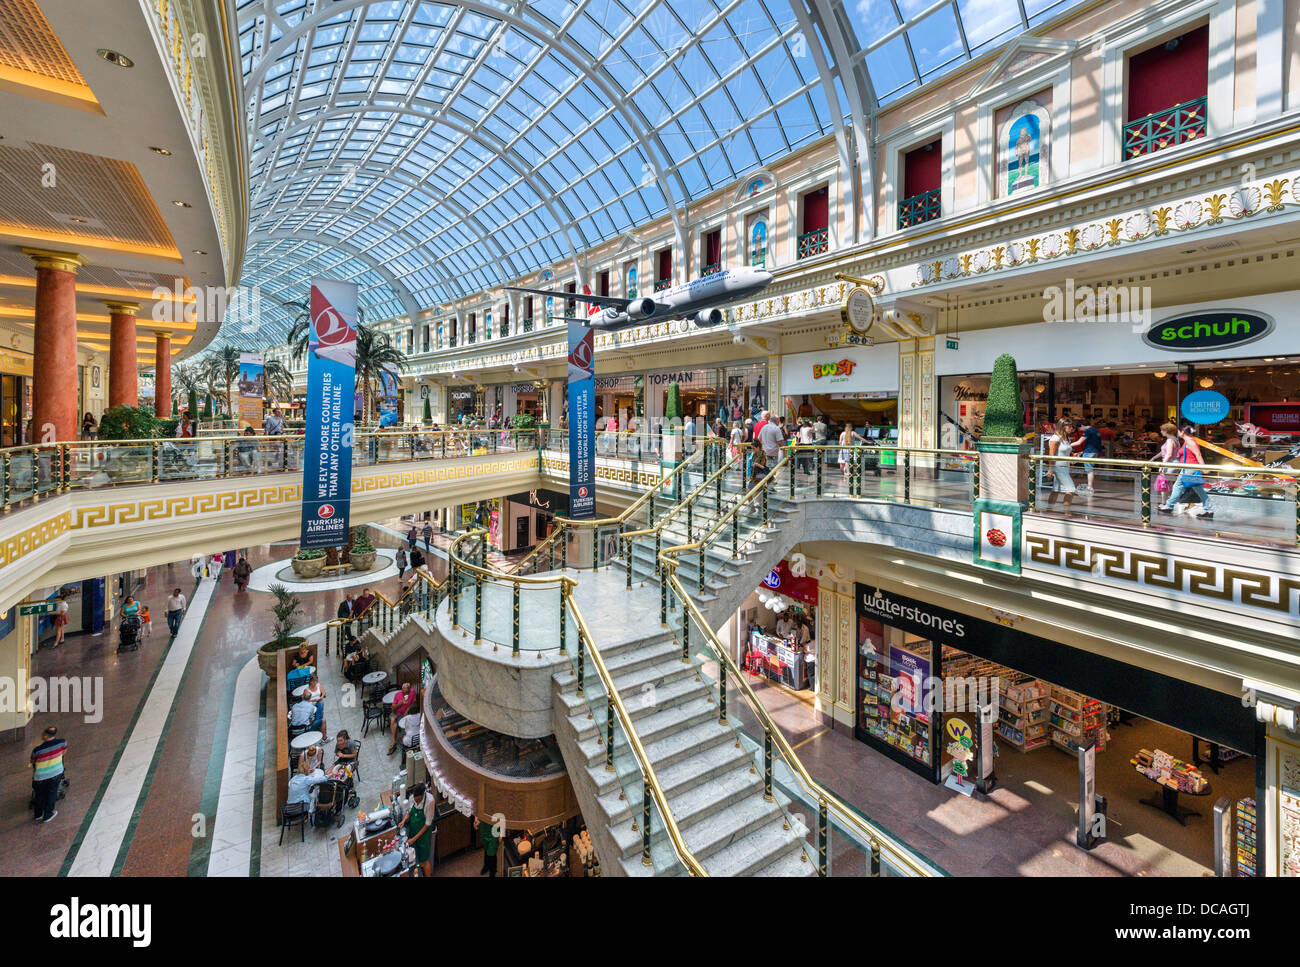 The Trafford Centre shopping complex, Dumplington, Greater Manchester, England, UK - Stock Image